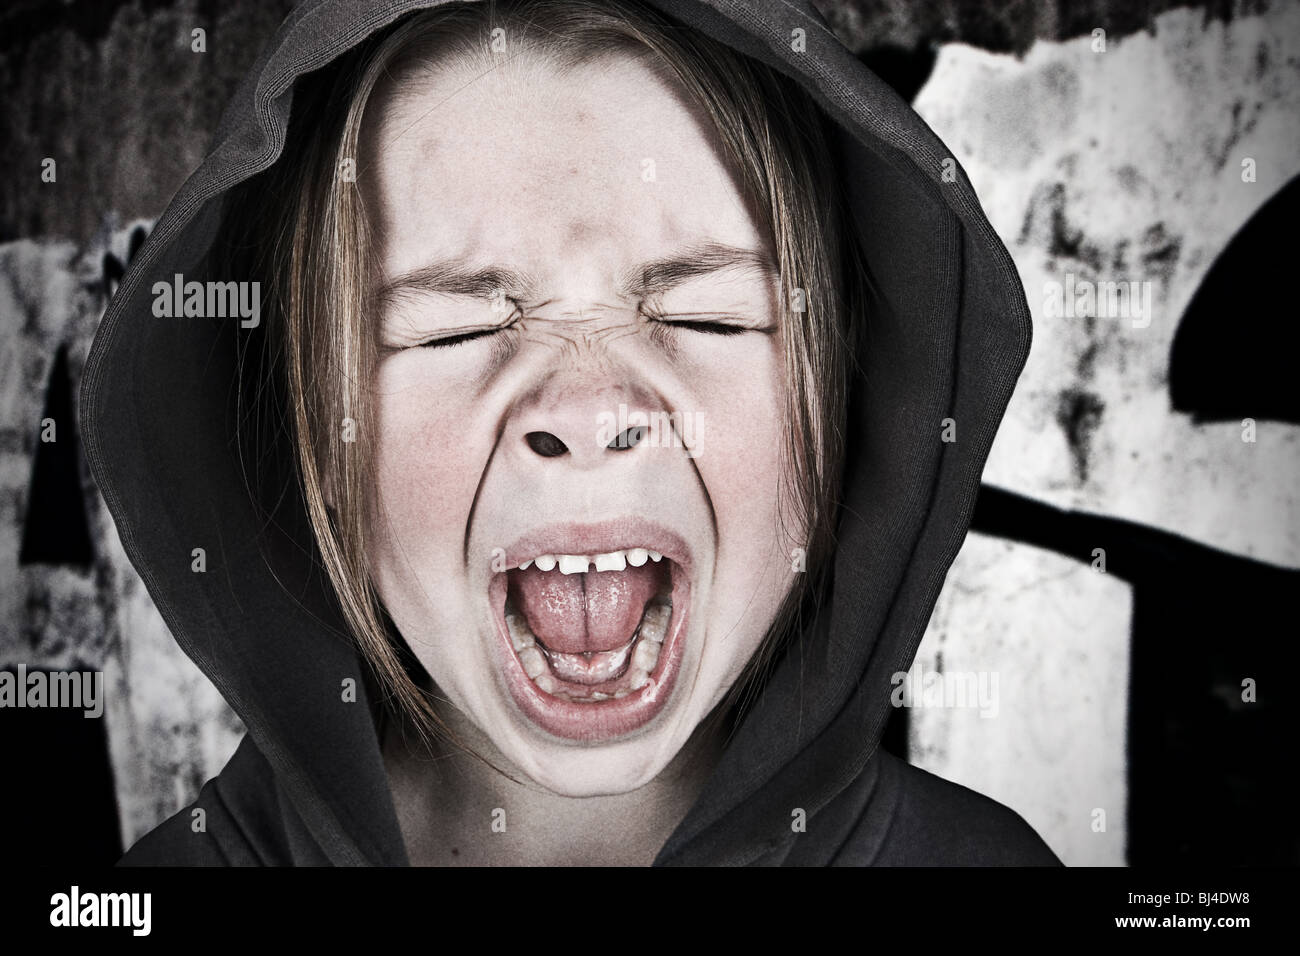 Shot of a Cute Girl in a Hooded Top Screaming - Stock Image